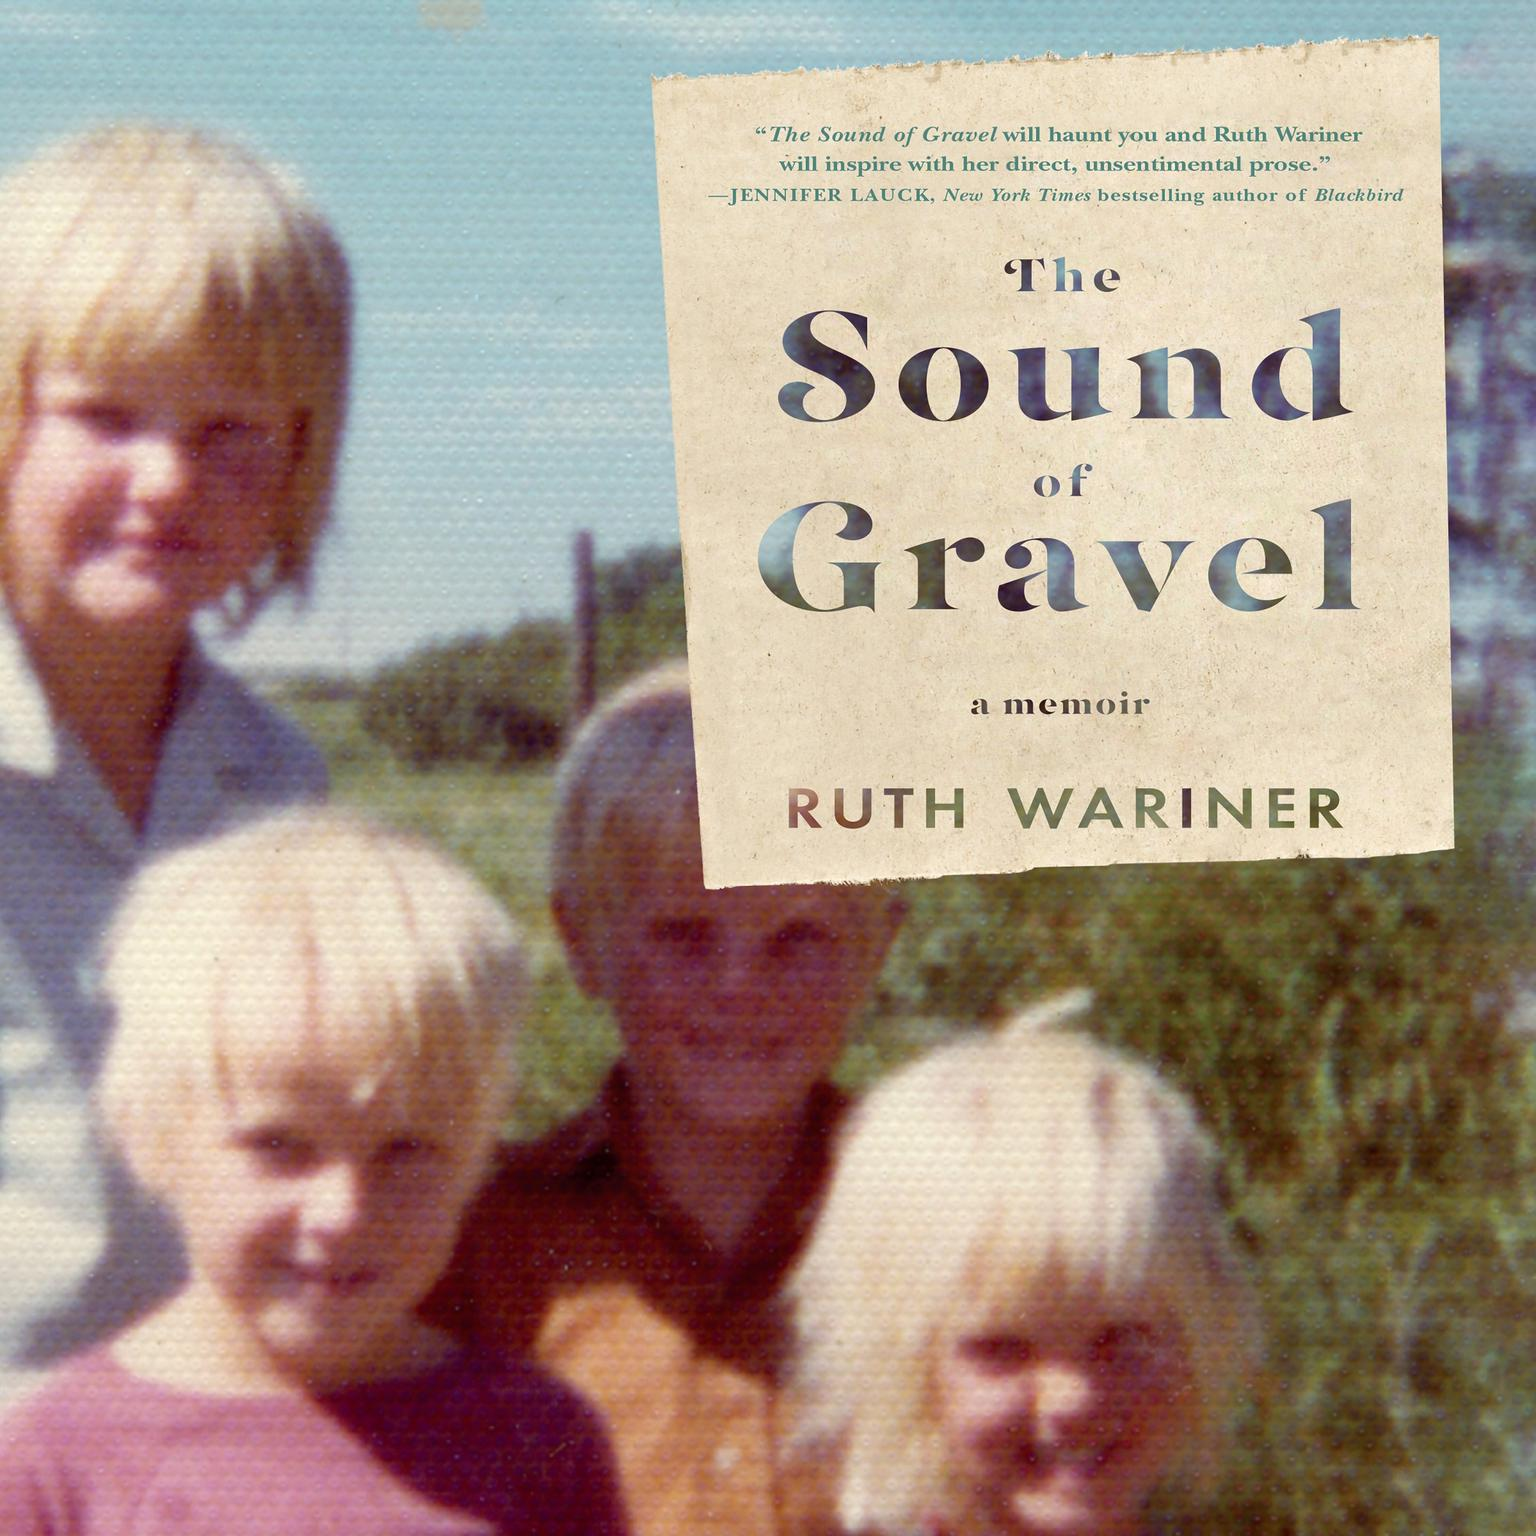 The Sound of Gravel - Ruth Wariner